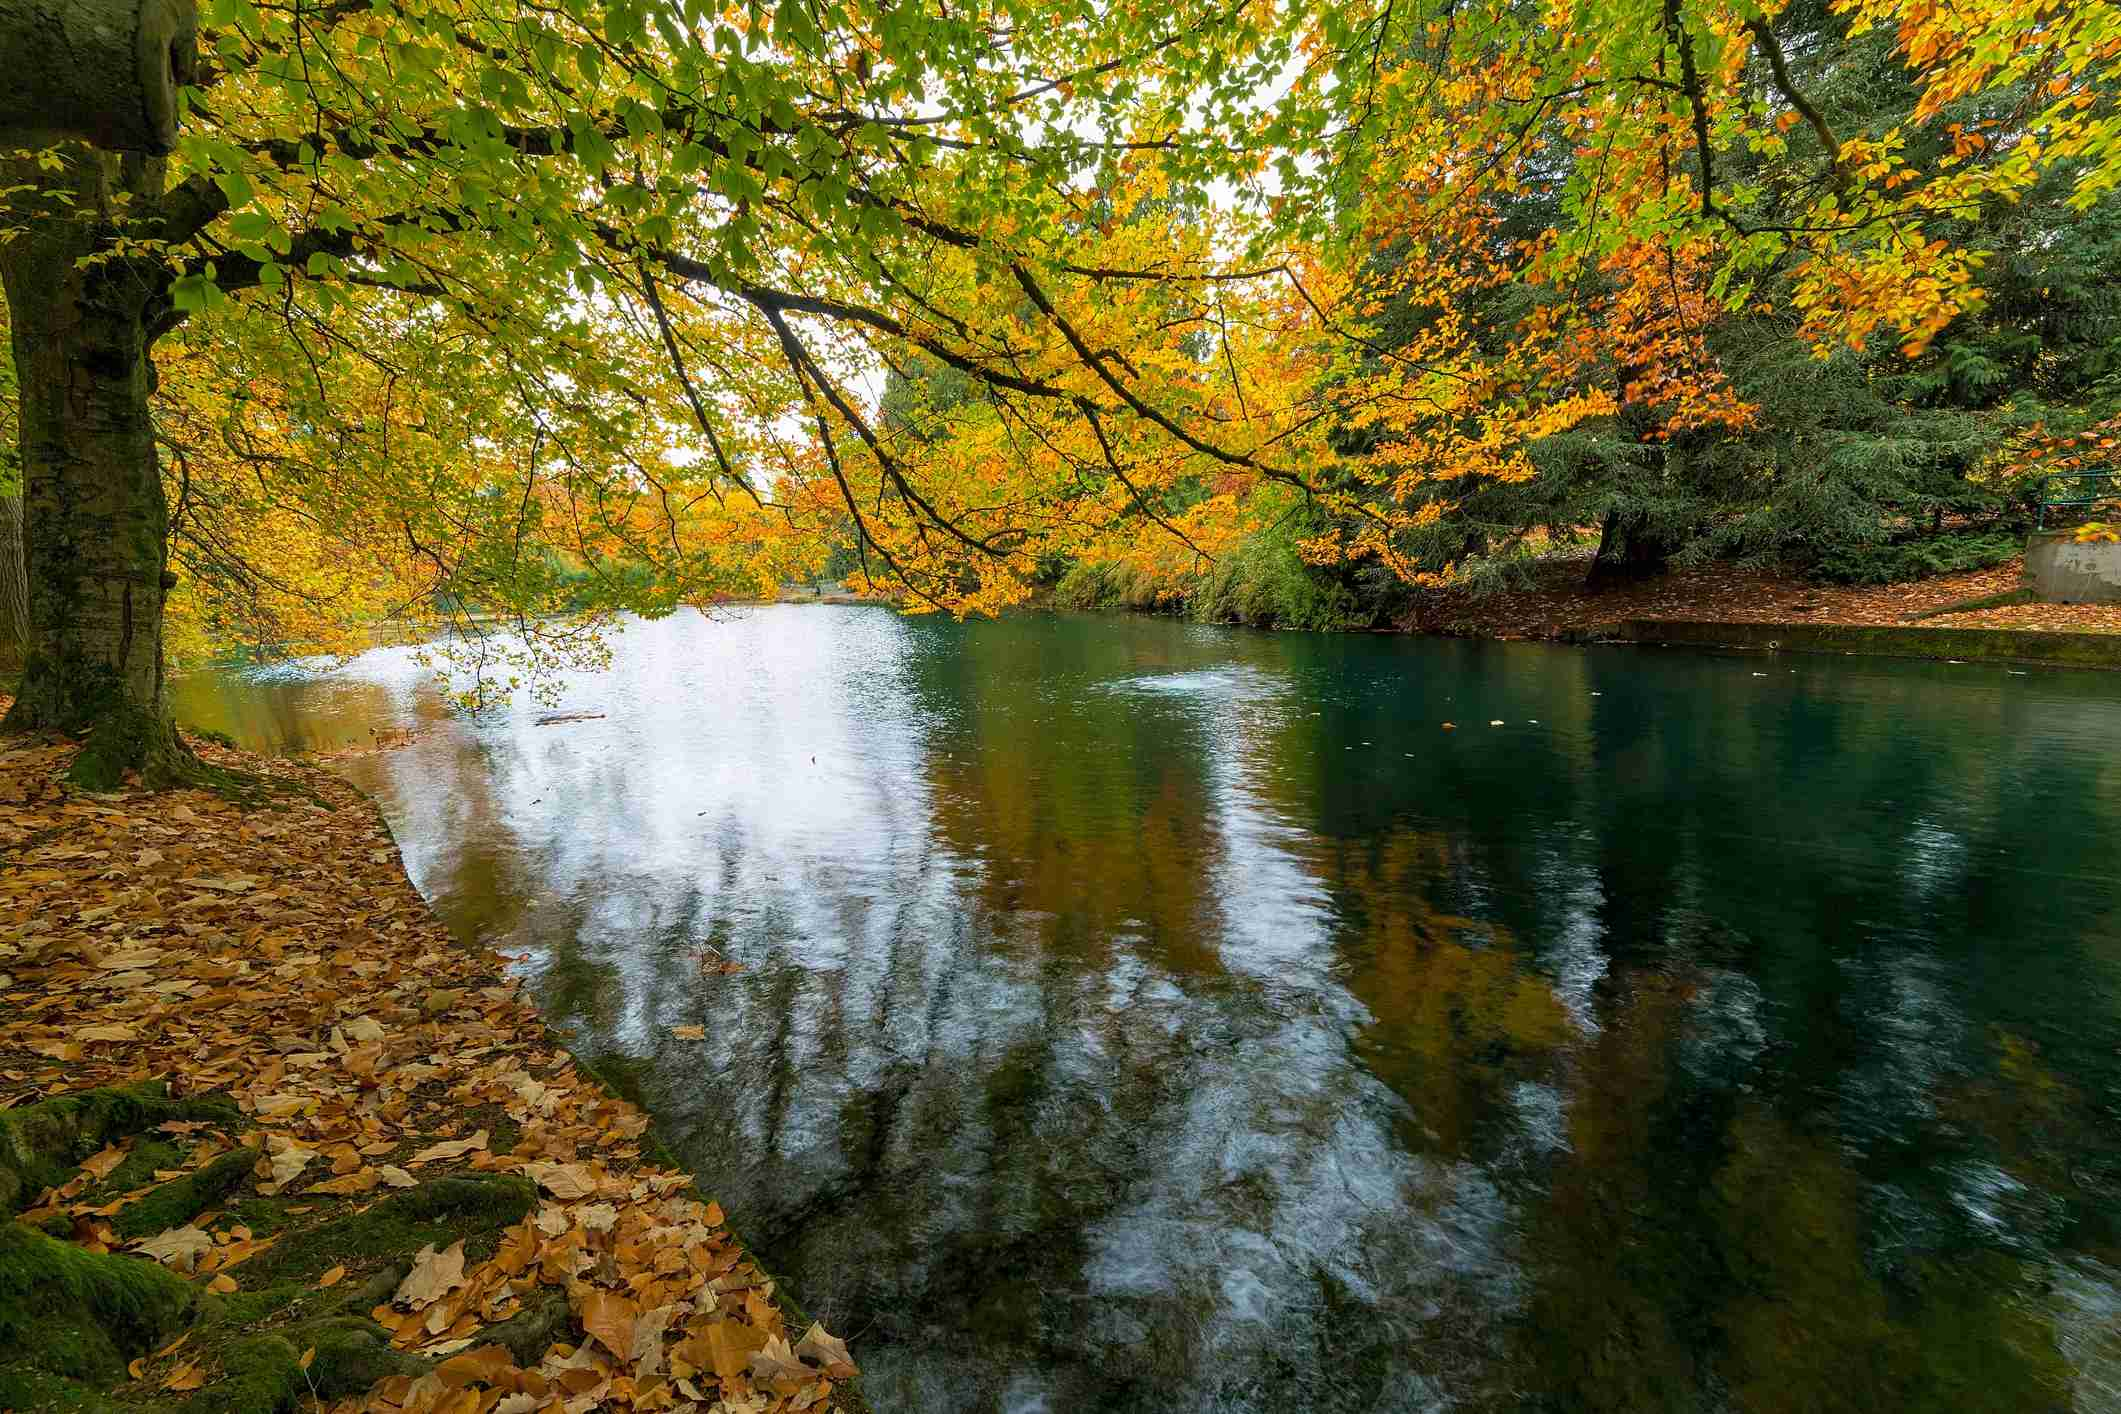 Fall foliage colors at Laurelhurst Park by the lake in Portland Oregon City in Autumn Season Image by Getty Images /